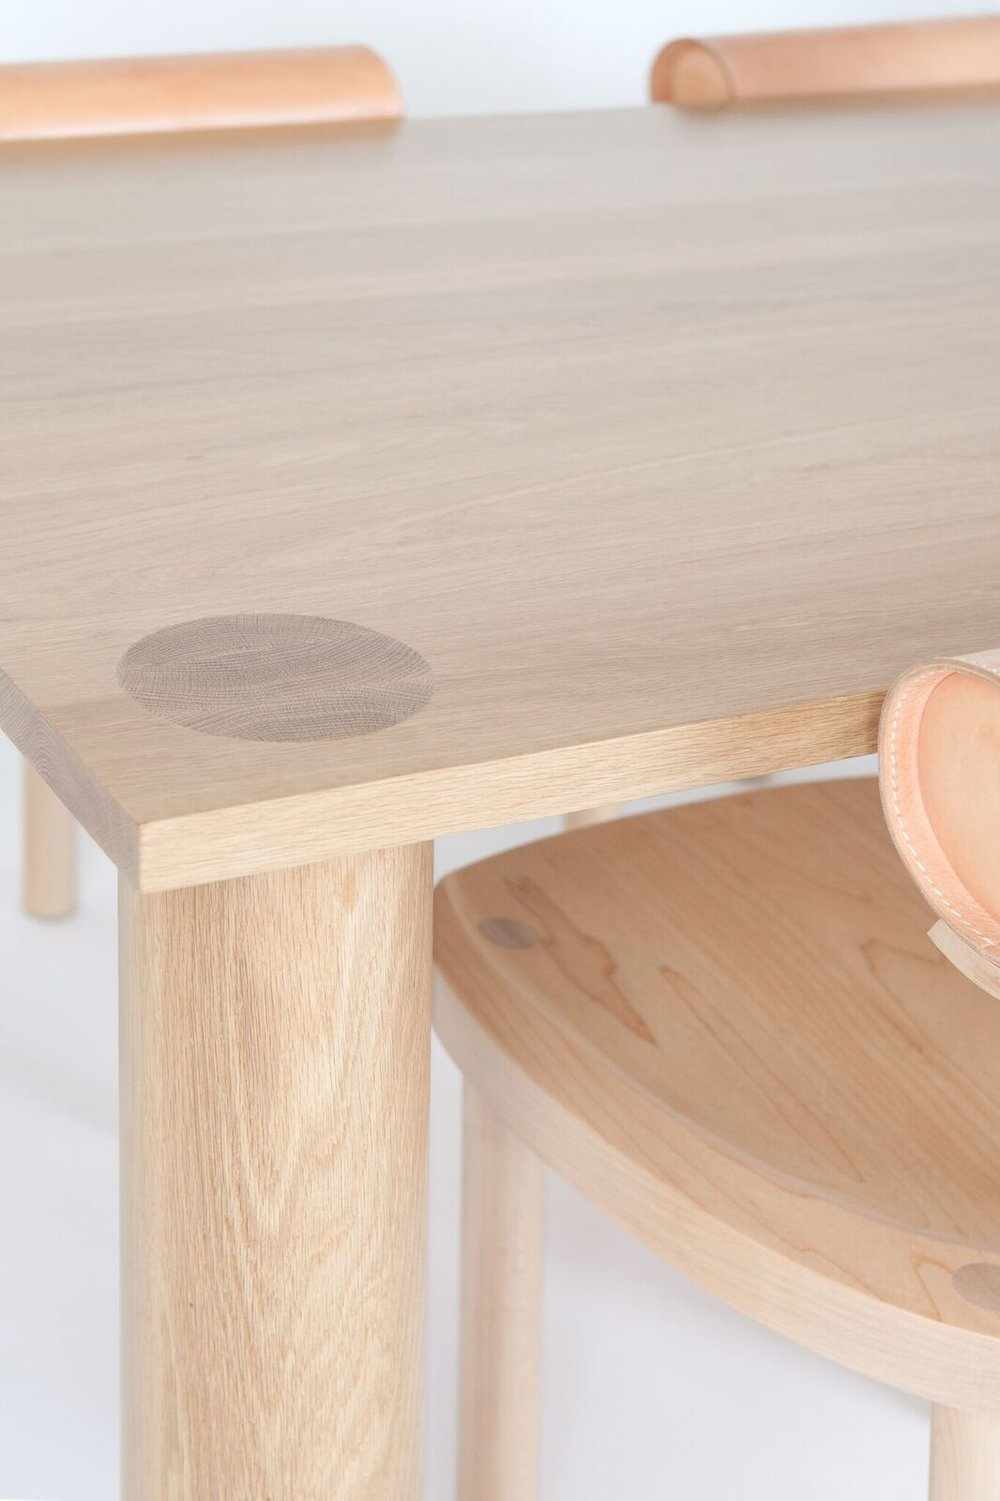 UNA_diningtable_detail_preview.jpg